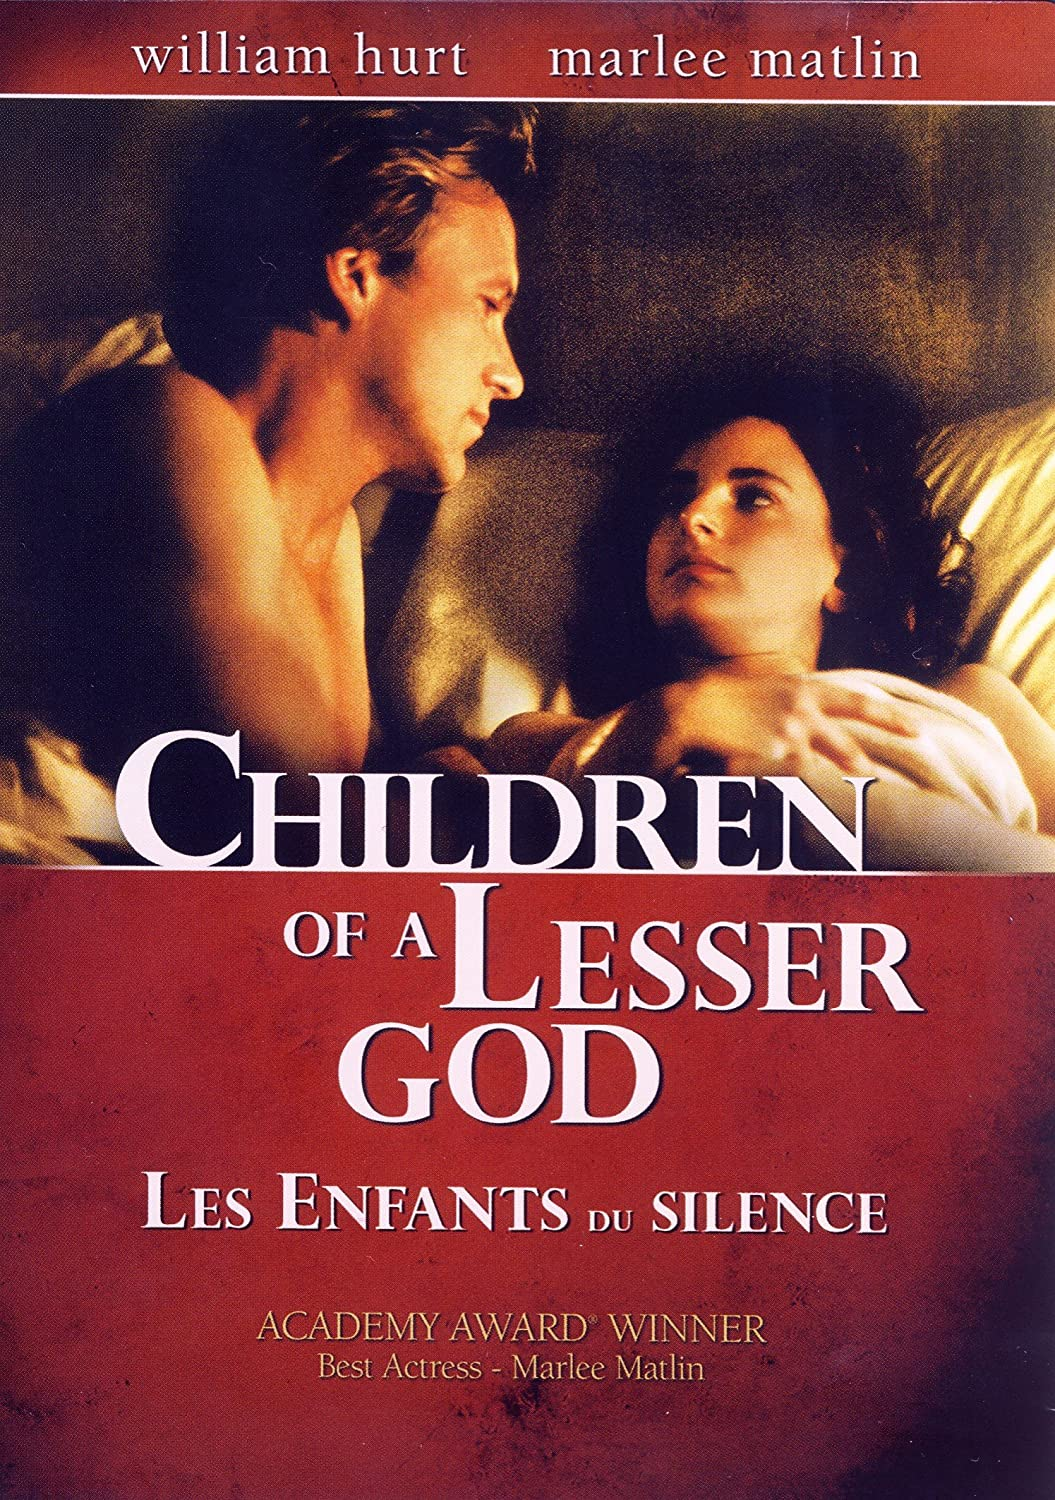 an analysis of the movie children of a lesser god From sophocles to neil simon, stage plays deliver a powerful experience explore the drama, the history, and the merriment of both classic plays and lesser known gems.